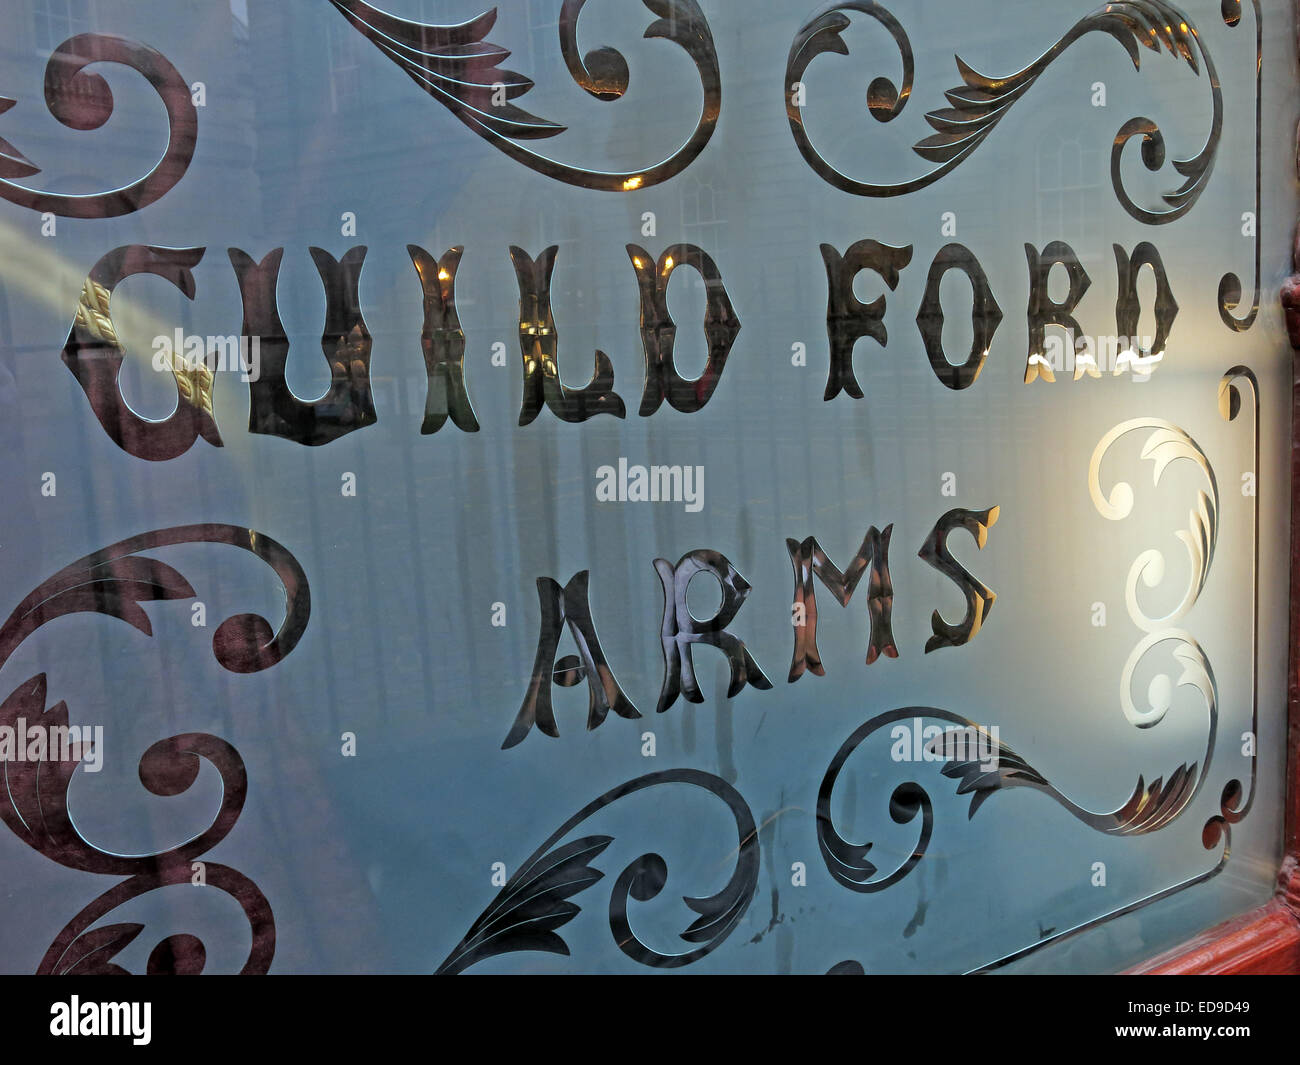 Etched glass from Guildford Arms pub Edinburgh, Scotland - Stock Image